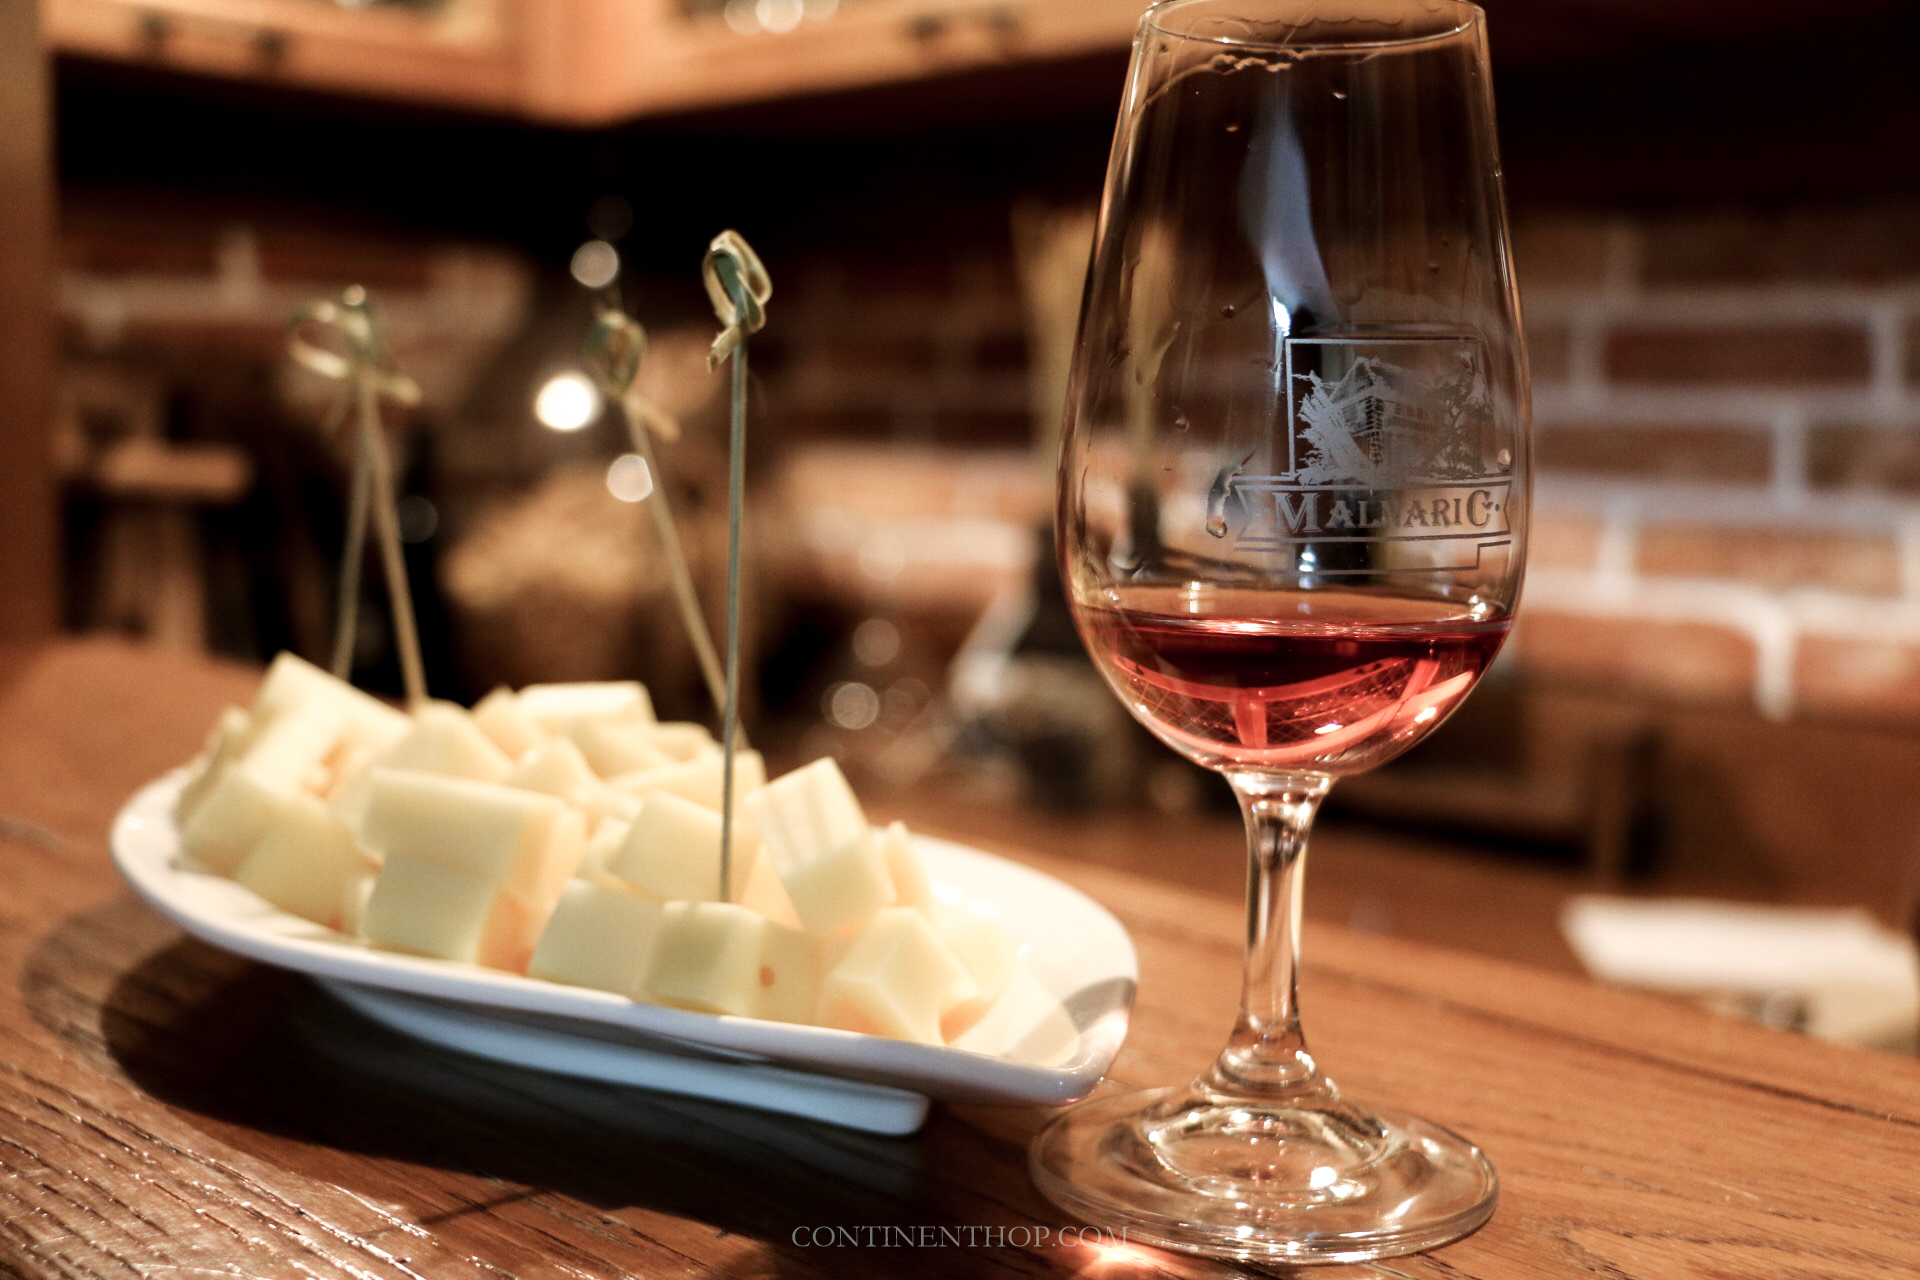 wine and cheese at malnaric vineyard excursion from big berry luxury glamping resort in bela krajina slovenia